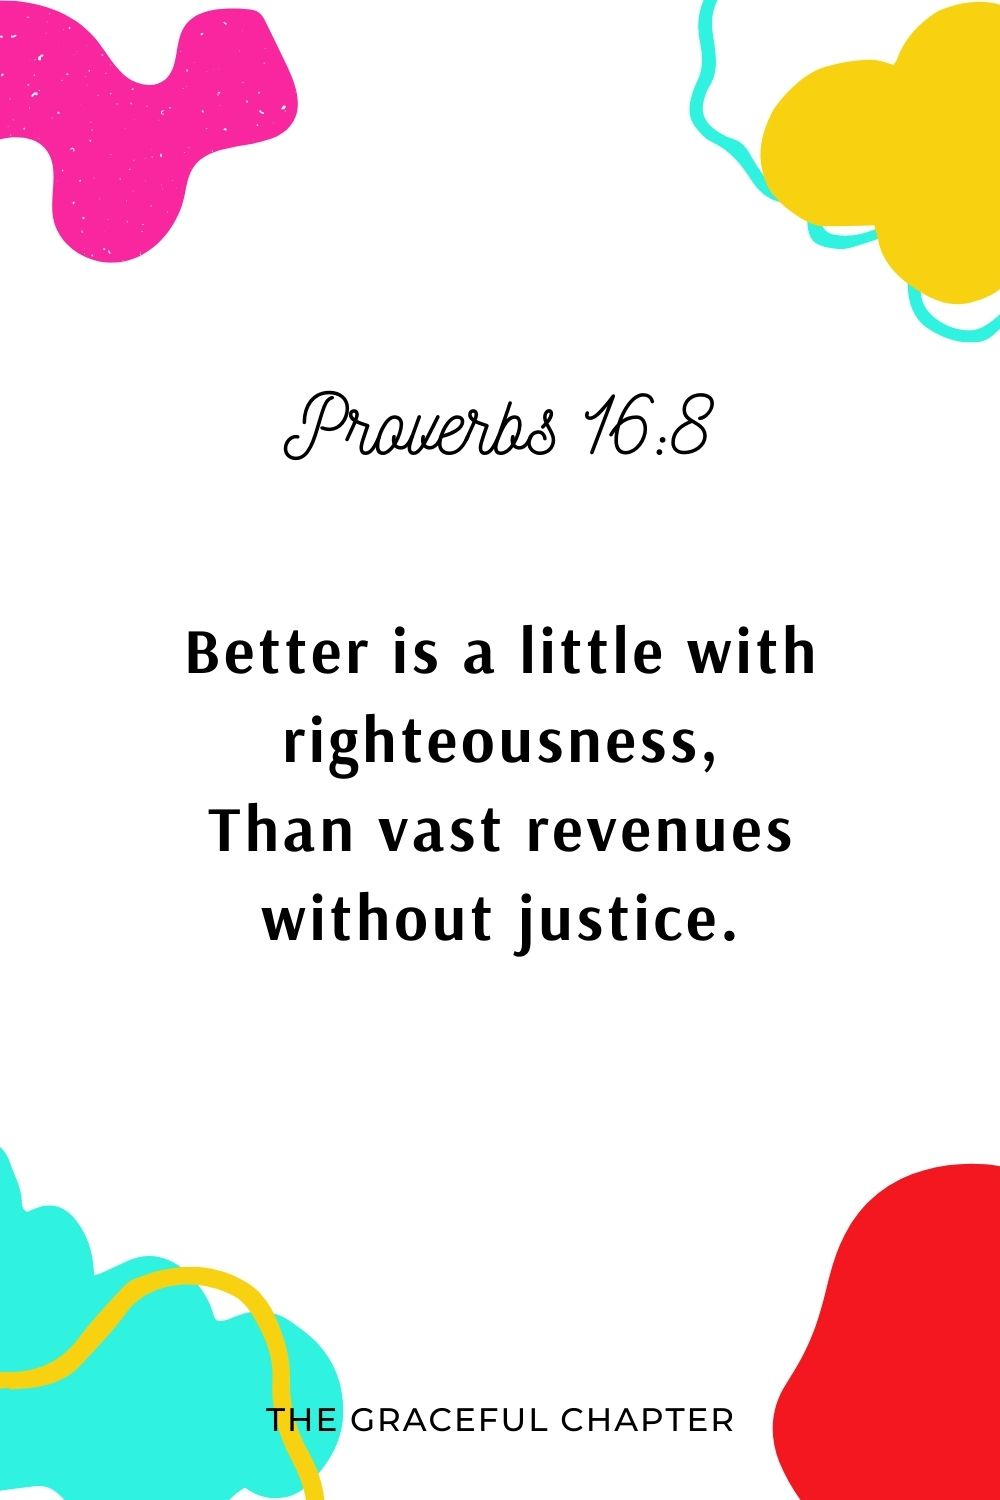 Better is a little with righteousness, Than vast revenues without justice. Proverbs 16:8